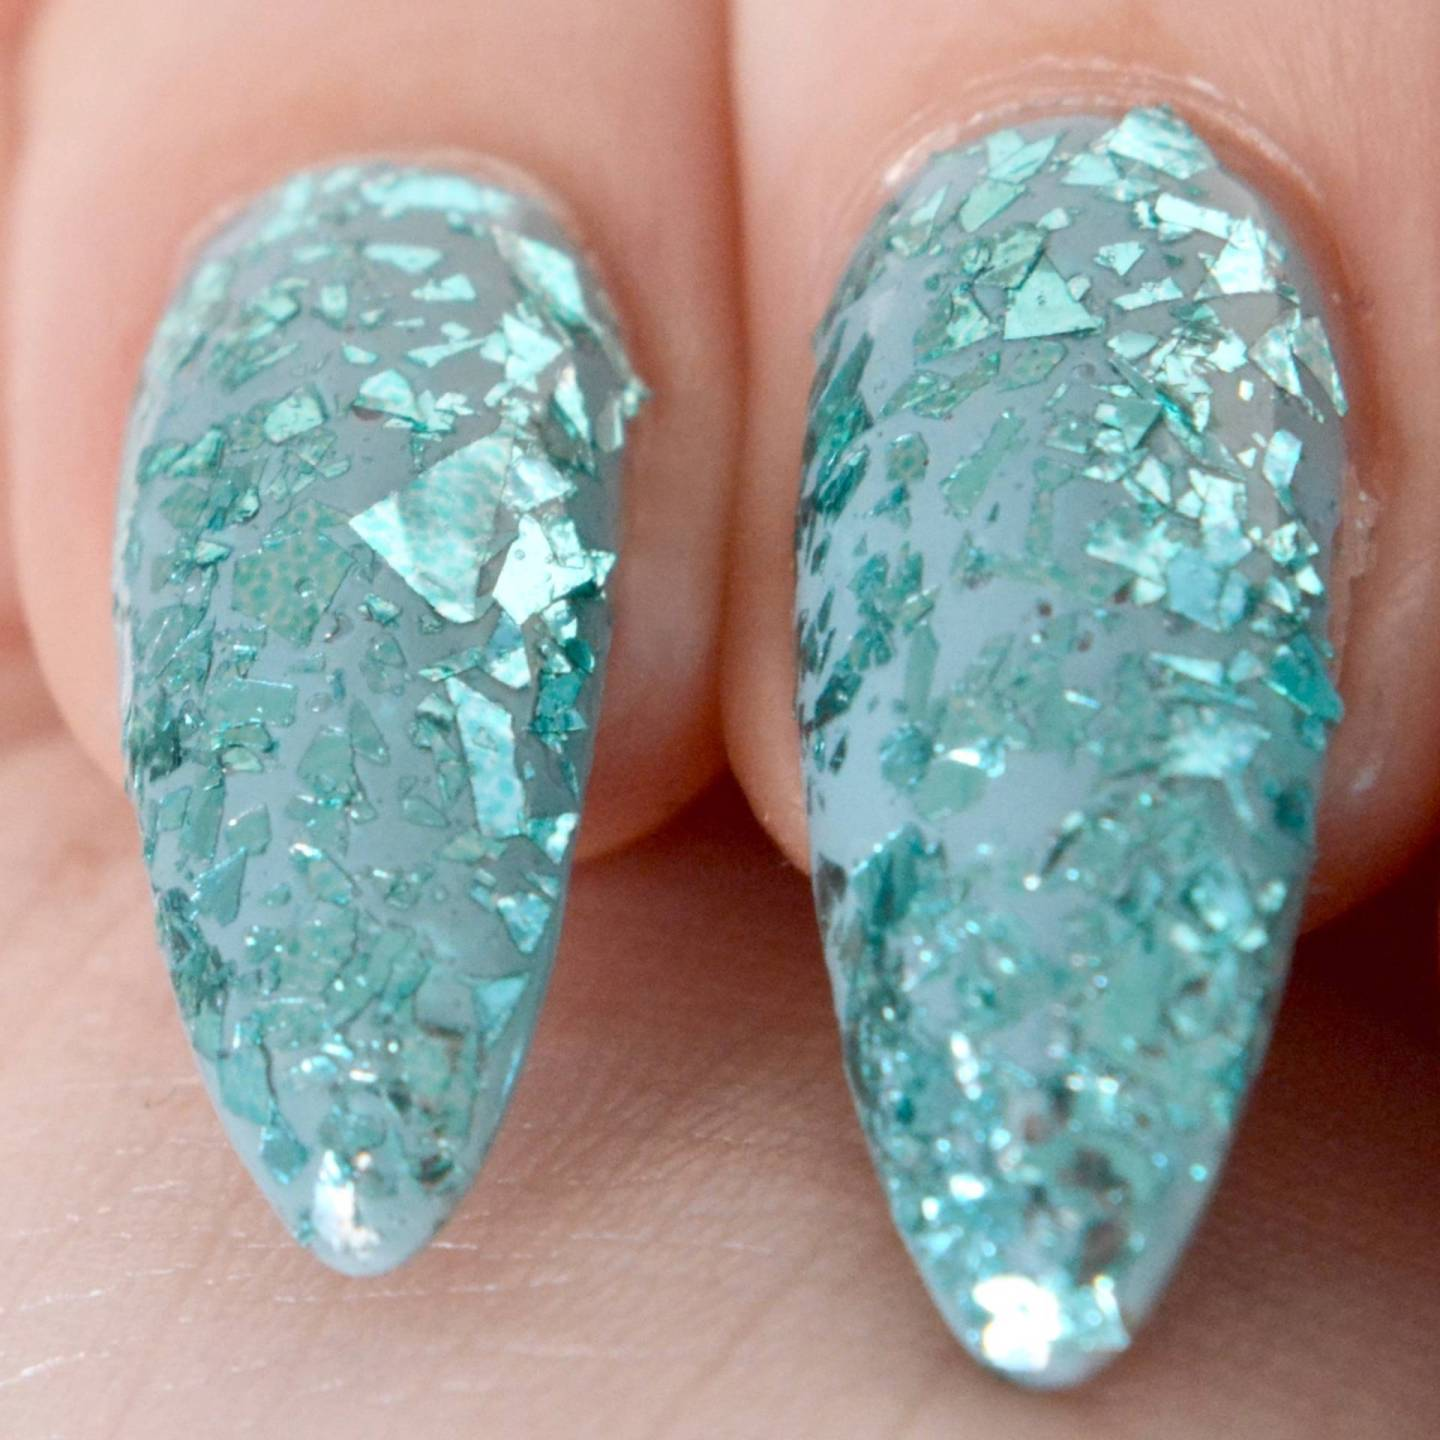 NAIO Aqua Cracked Ice glitter, glitter nail art